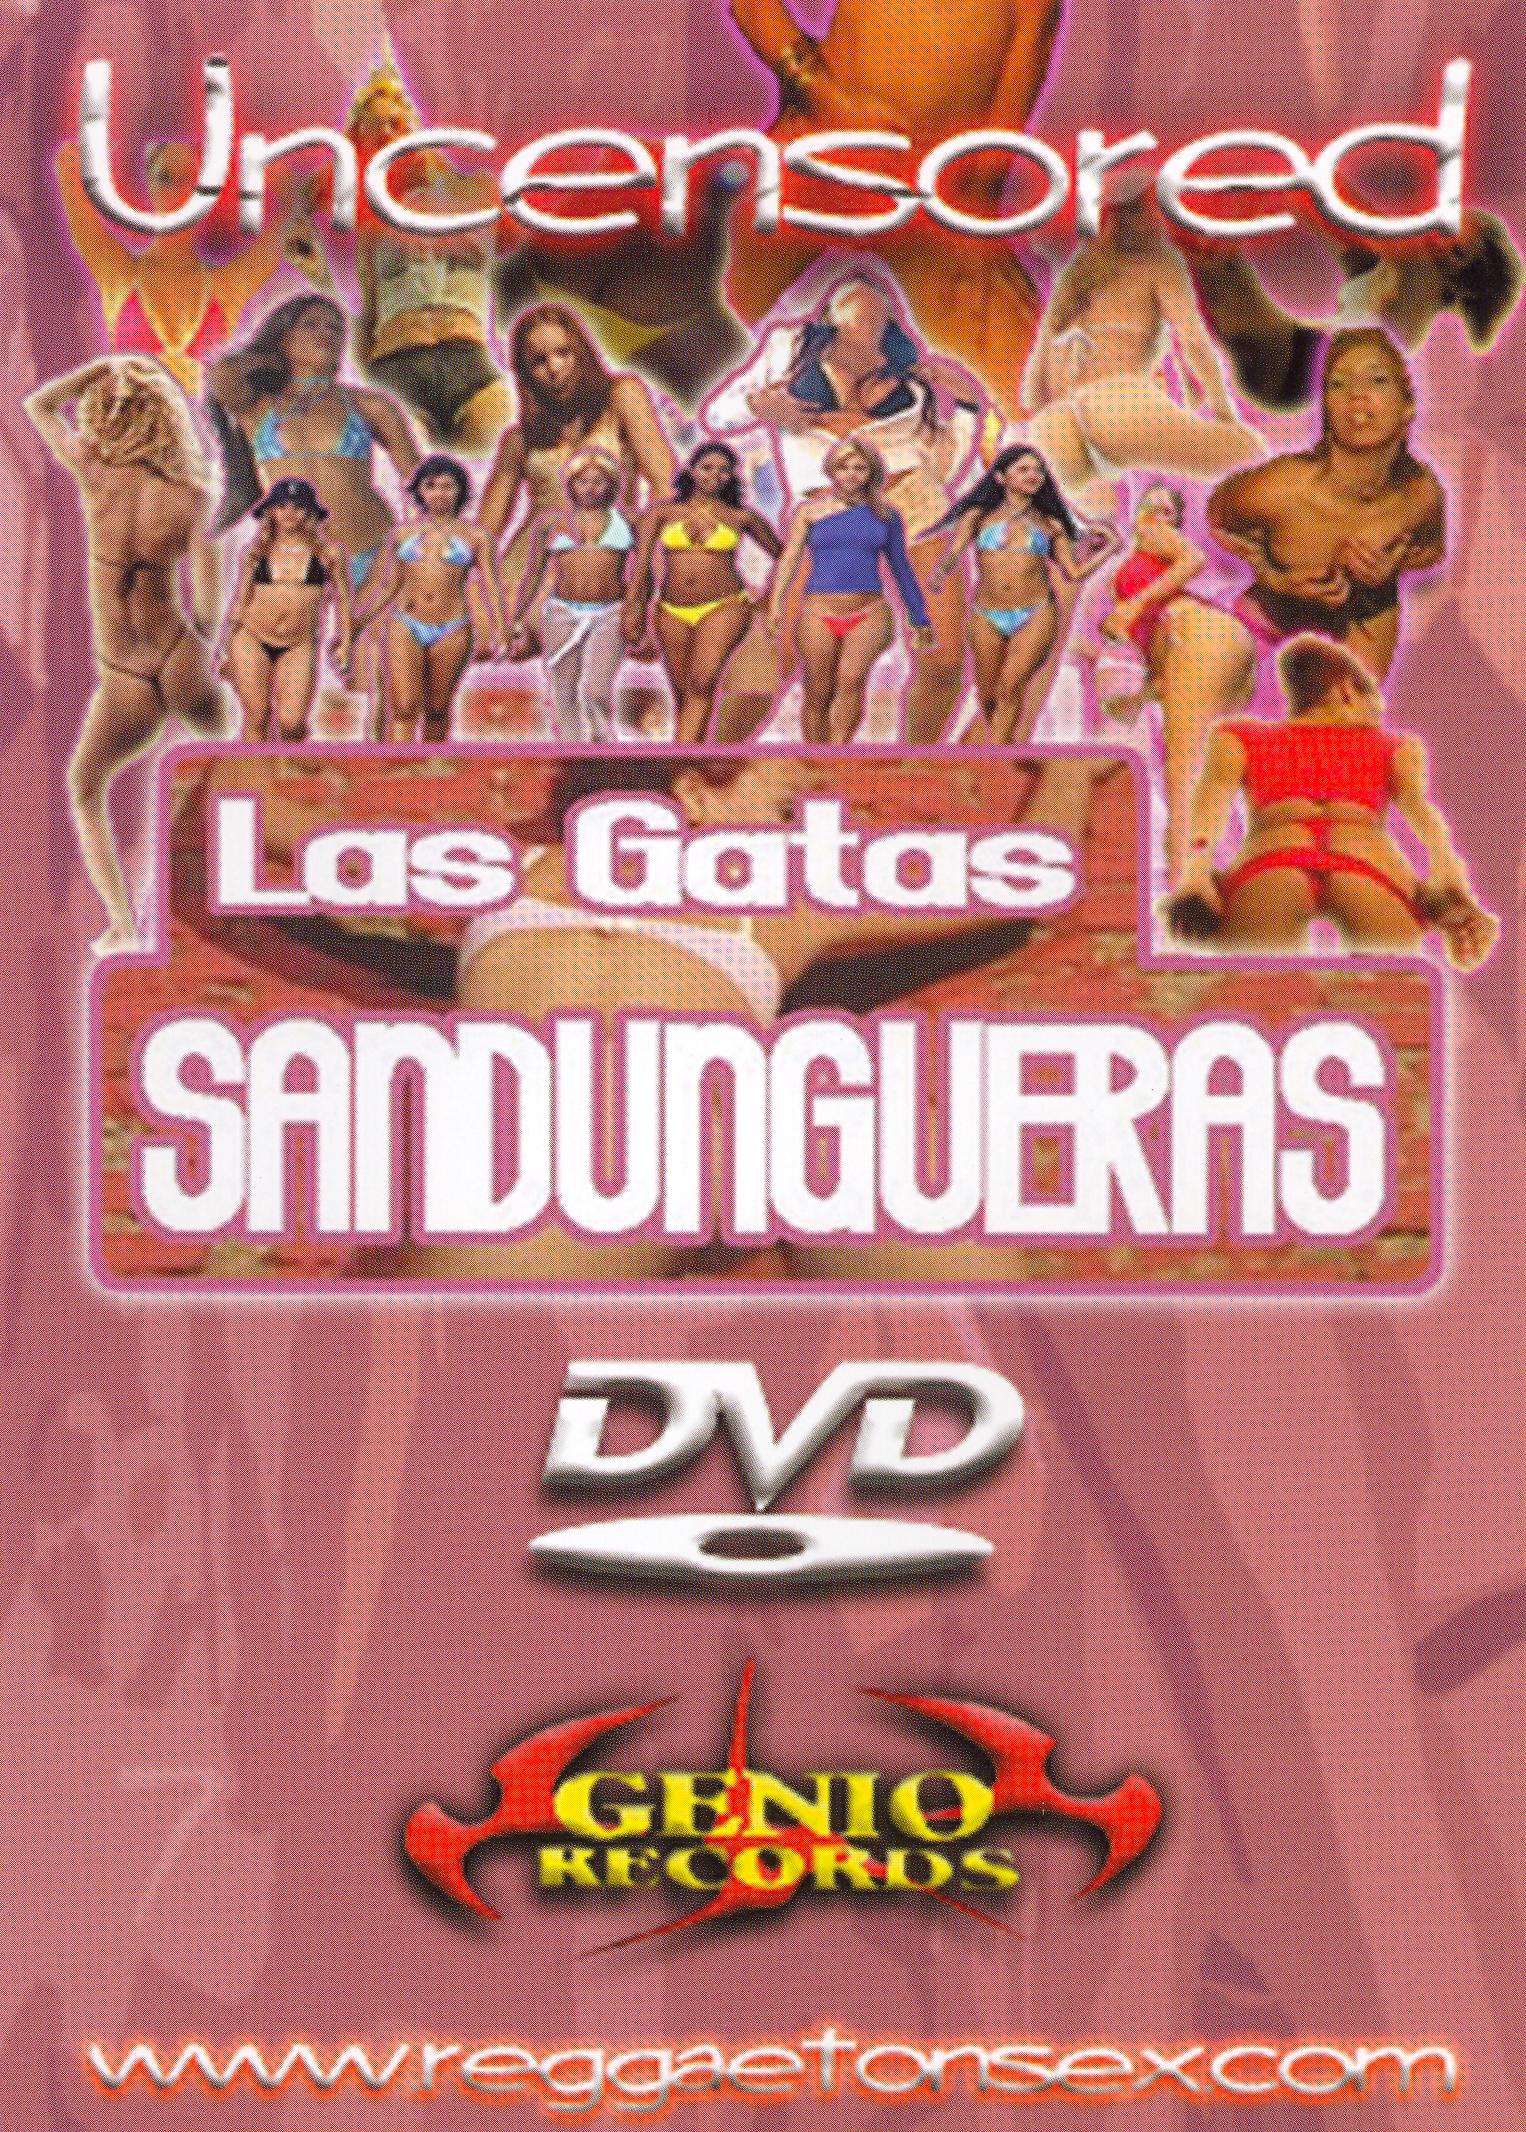 Gatas Sandungueras: Uncensored